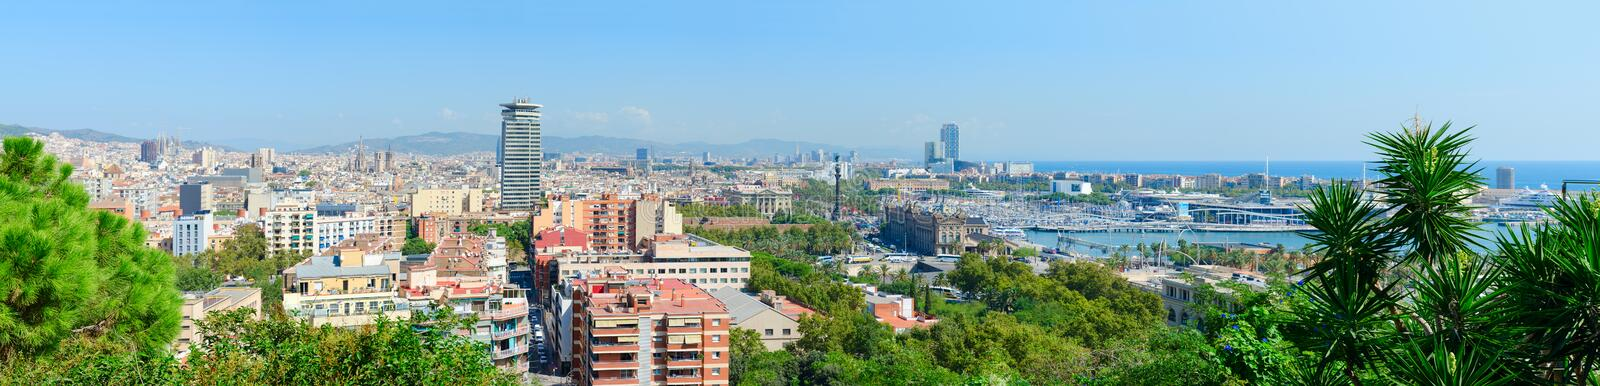 Scenic panoramic view from above to Barcelona, Spain stock photo